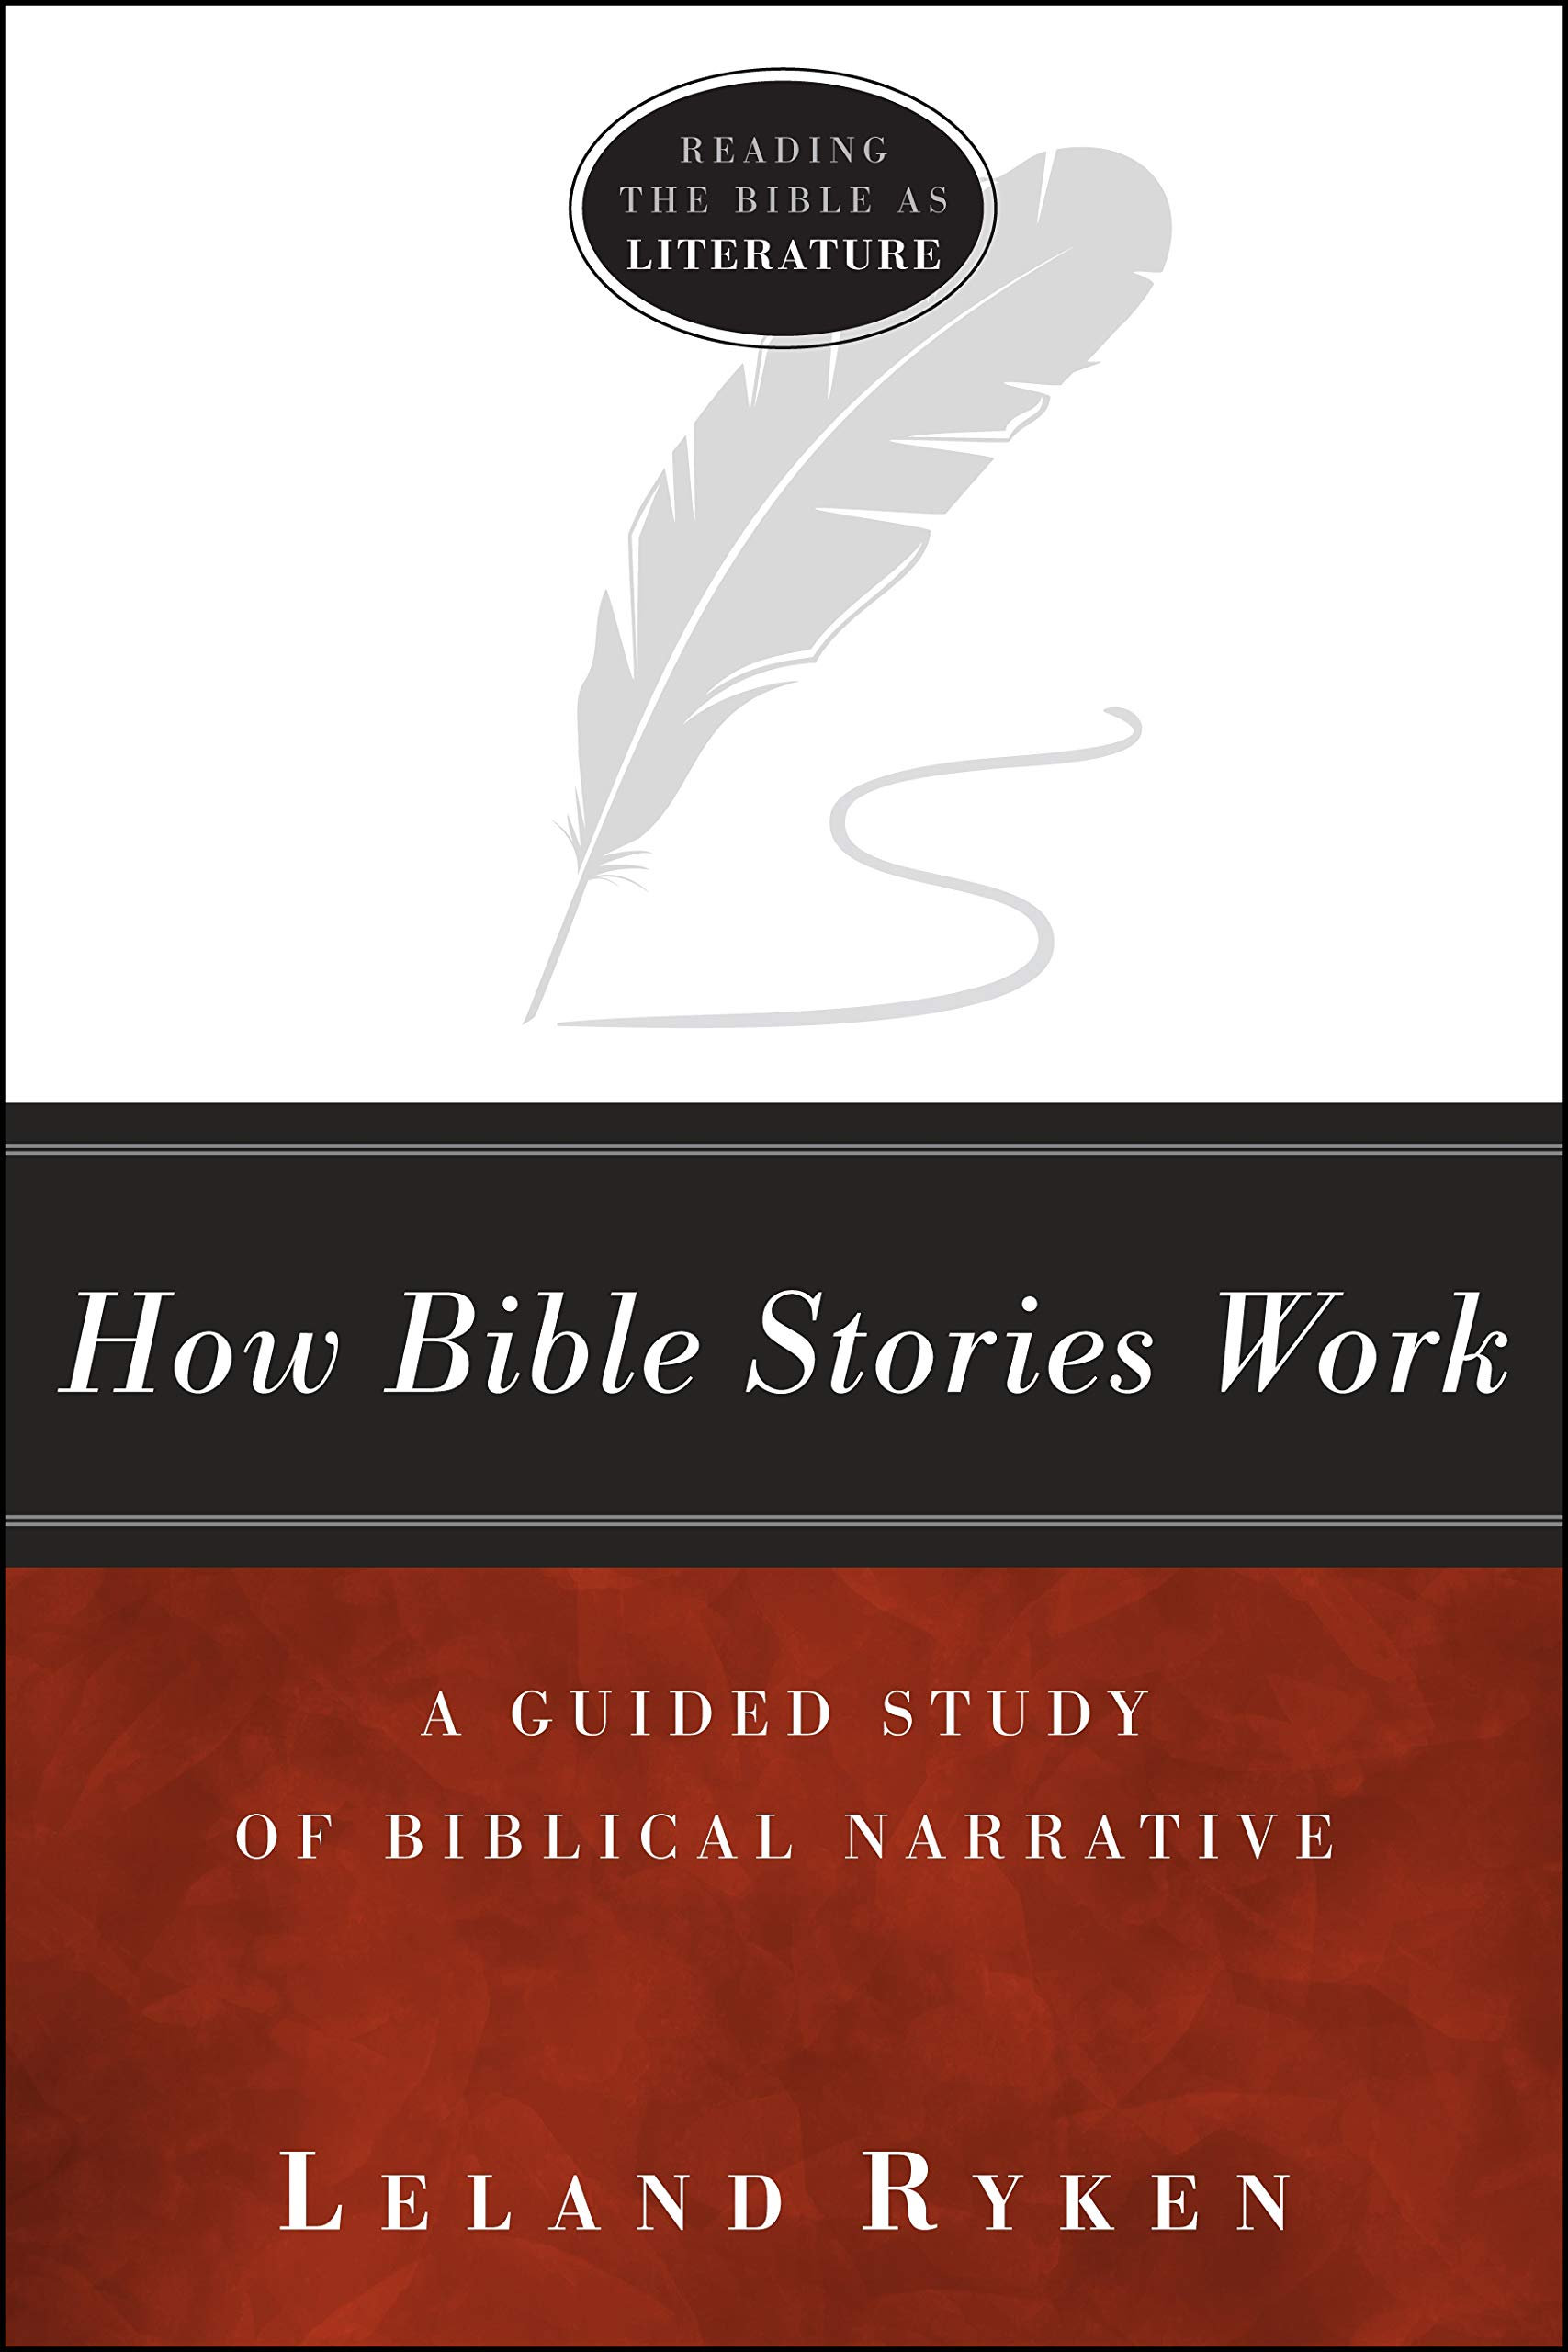 How Bible Stories Work: A Guided Study of Biblical Narrative (Reading the  Bible As Literature): Leland Ryken: 9781941337363: Amazon.com: Books